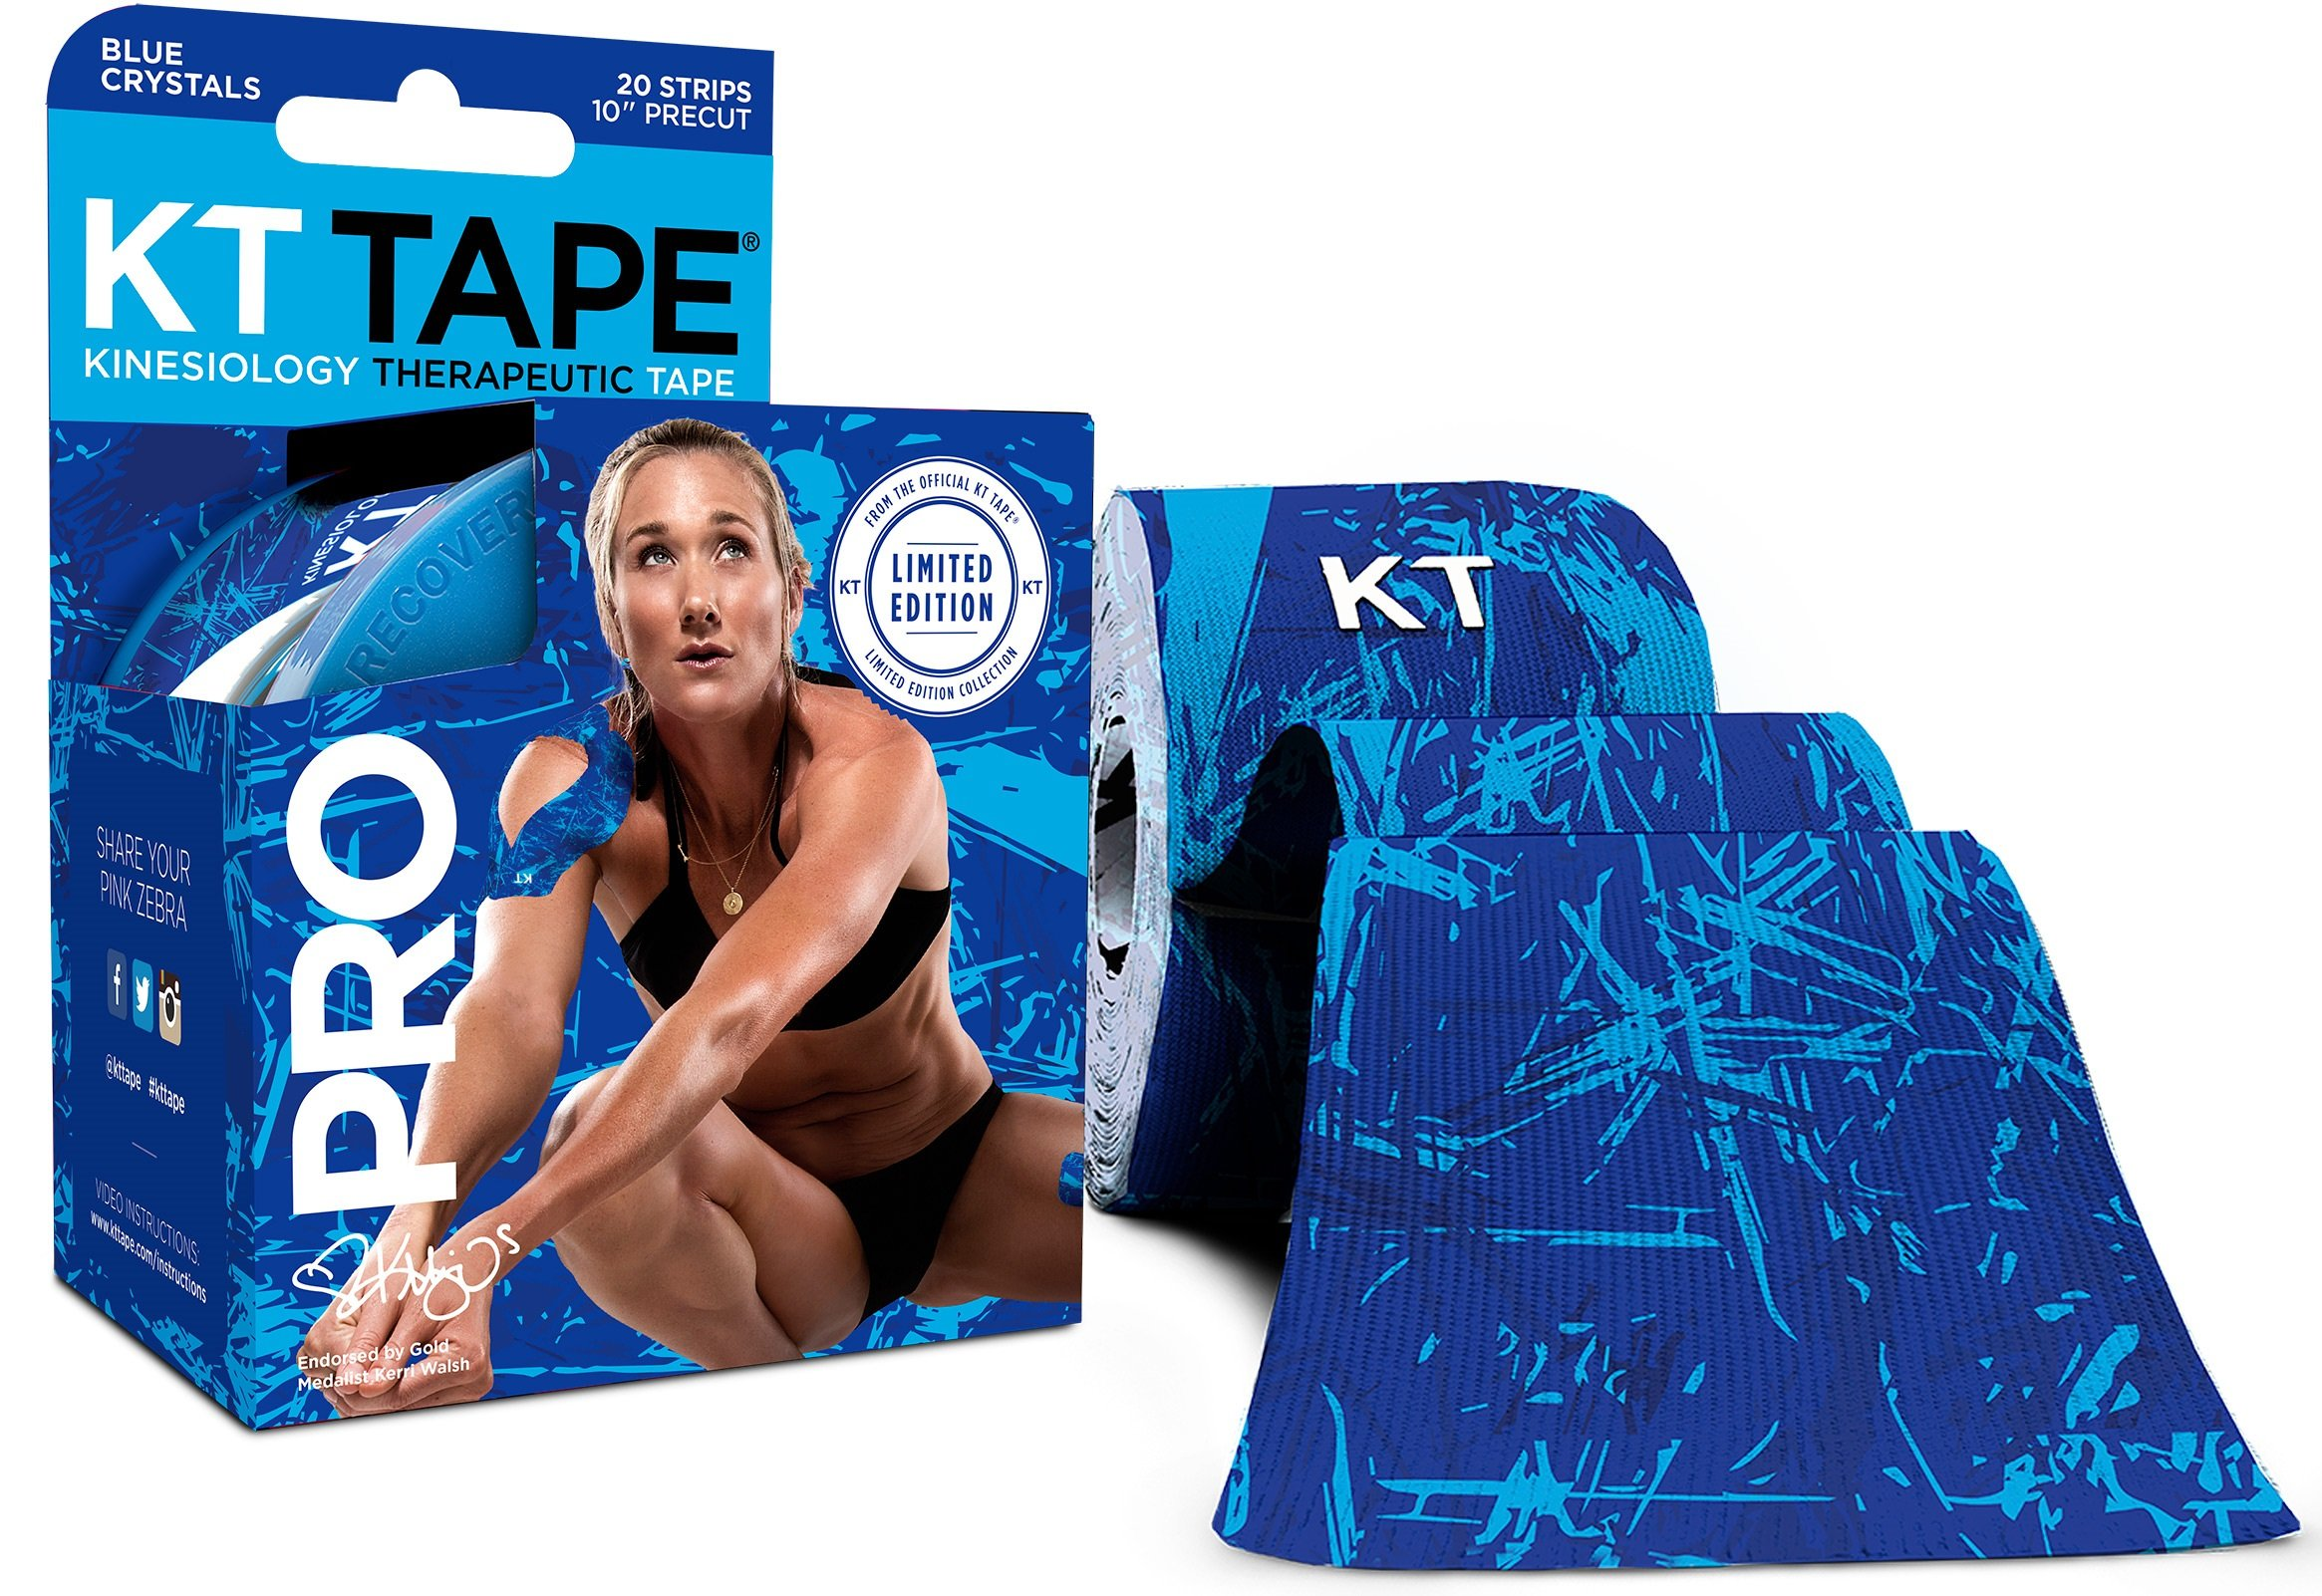 KT Tape PRO LIMITED EDITION Synthetic Kinesiology Tape Roll - 20 Precut 10 Inch I Strips - Blue Ice Crystals by KT Tape (Image #1)